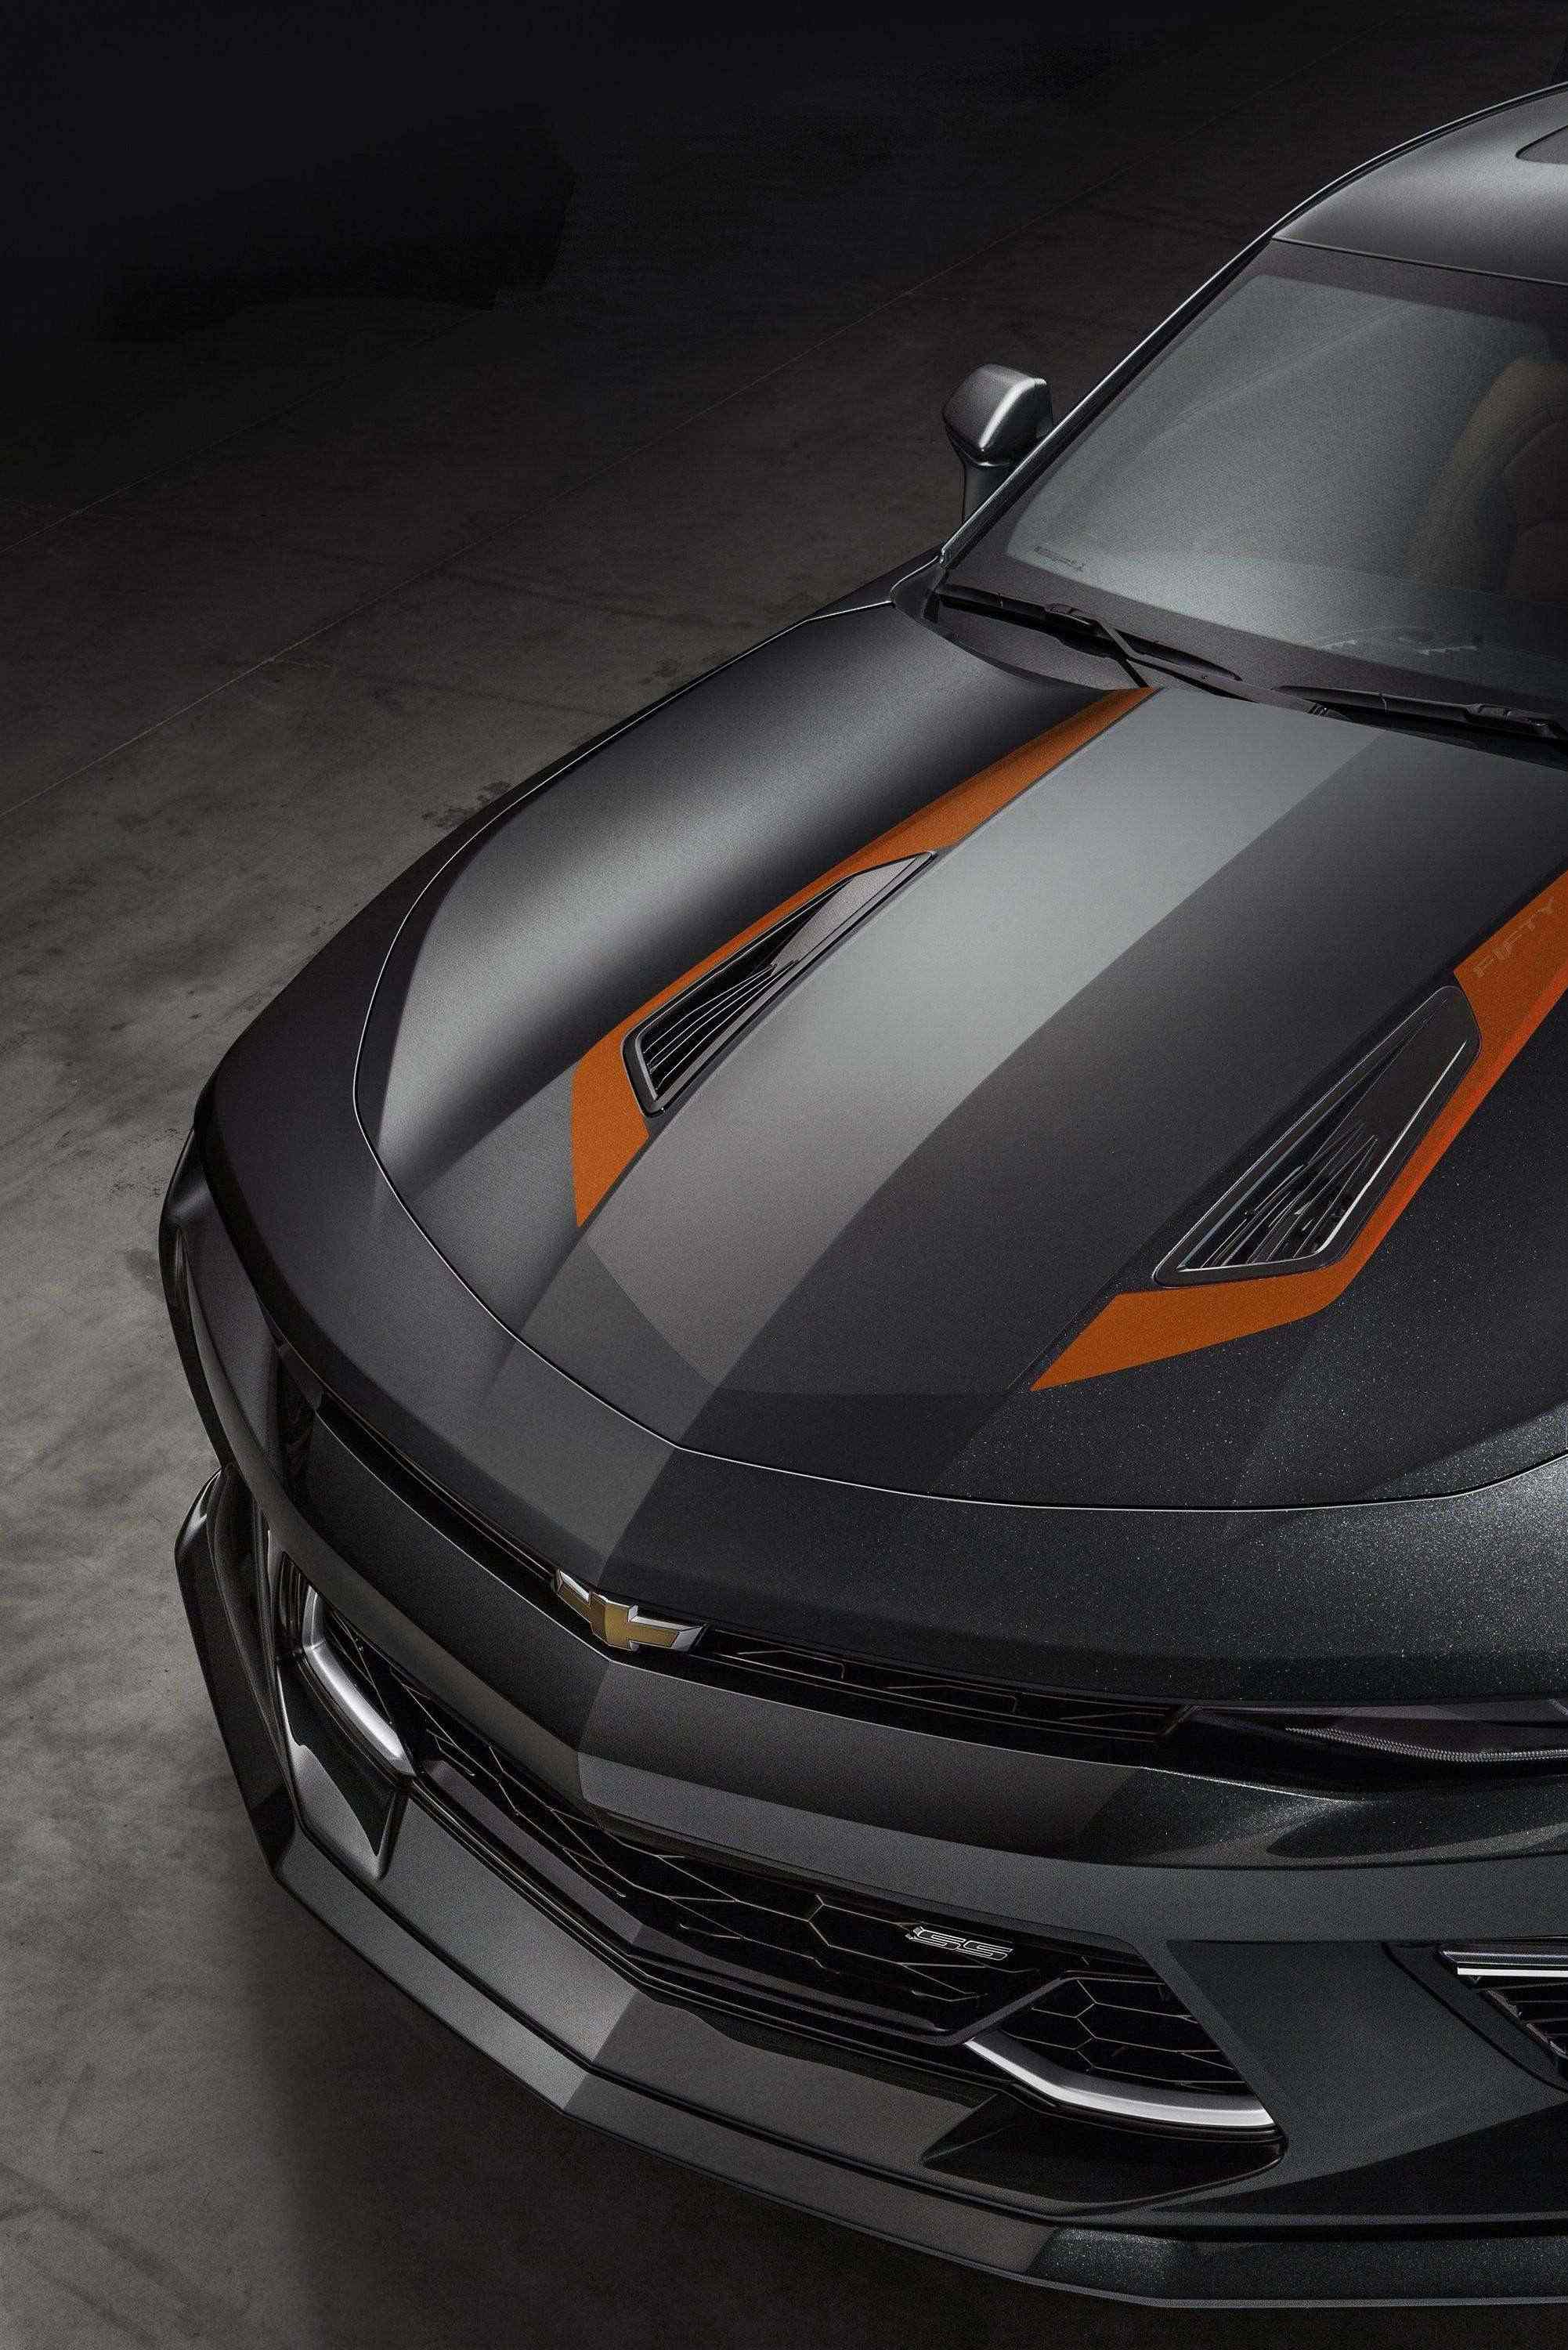 "The 2017 Camaro 50th Anniversary Special Edition is available summer 2016 on 2LT and 2SS coupe or convertible models. The Special Edition features a Nightfall Gray exterior, unique 20"" wheels and center caps, orange stripe package and a black interior with suede accents and orange stitching. Distinct 50th anniversary badging treatment is featured on seatbacks, the steering wheel badge and illuminated sill plates. For the 2017 model year, every Camaro built will feature a special 50th Anniversary badge on the steering wheel."